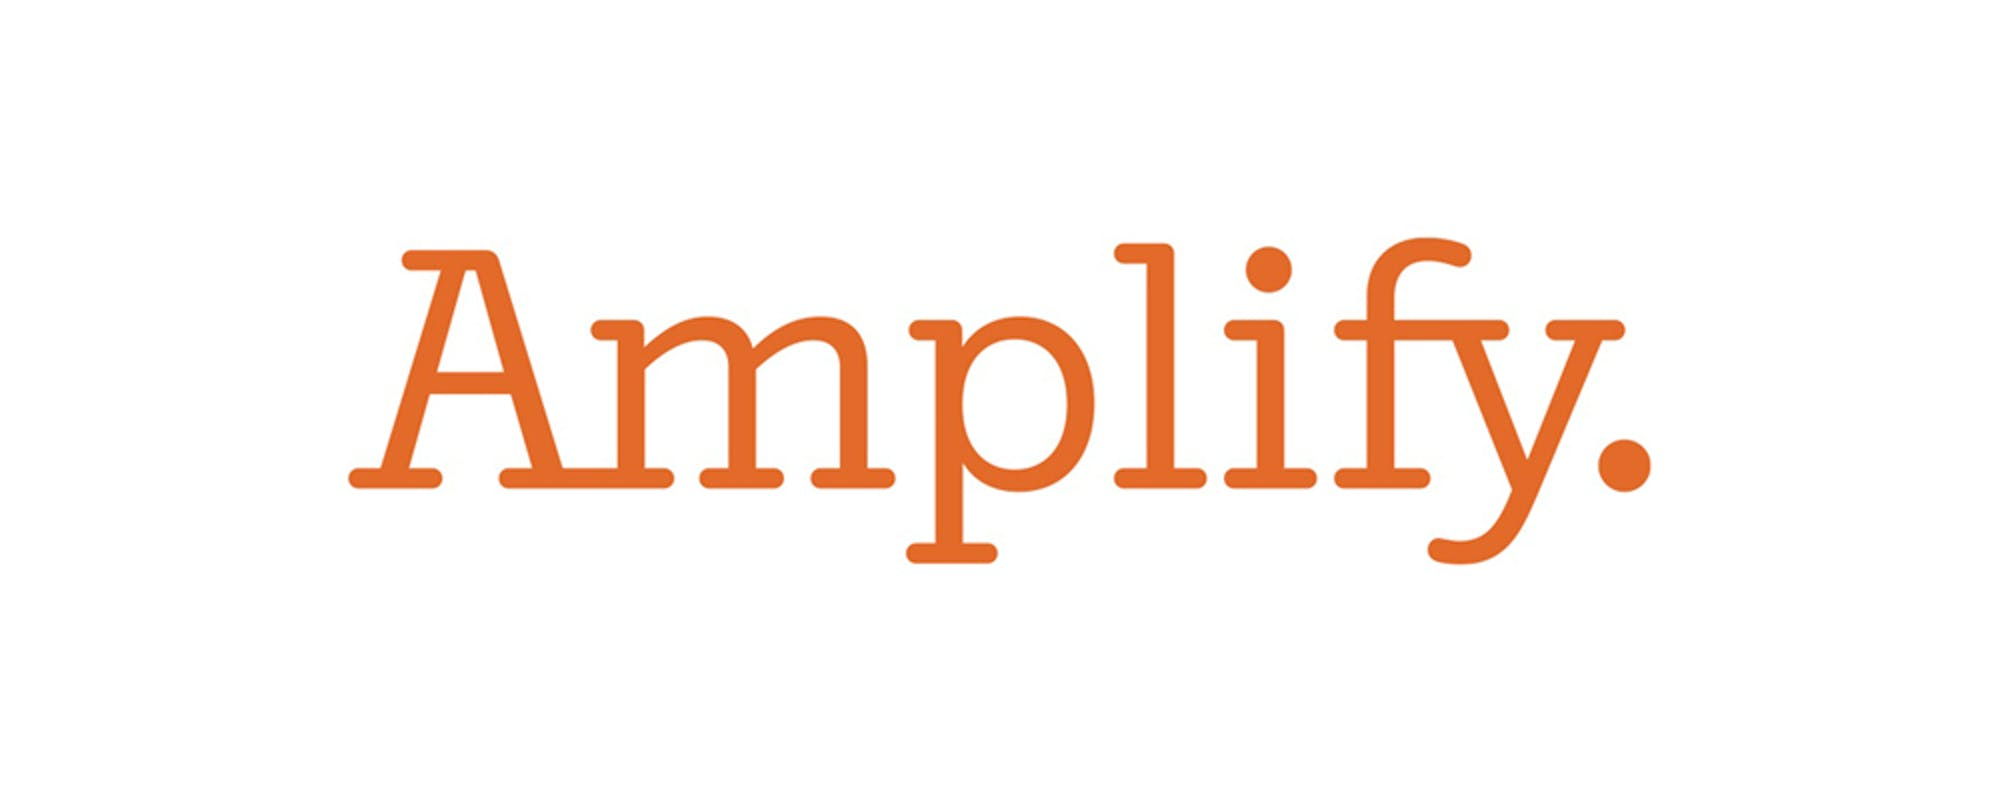 It's Official: News Corporation Is Looking to Sell Amplify